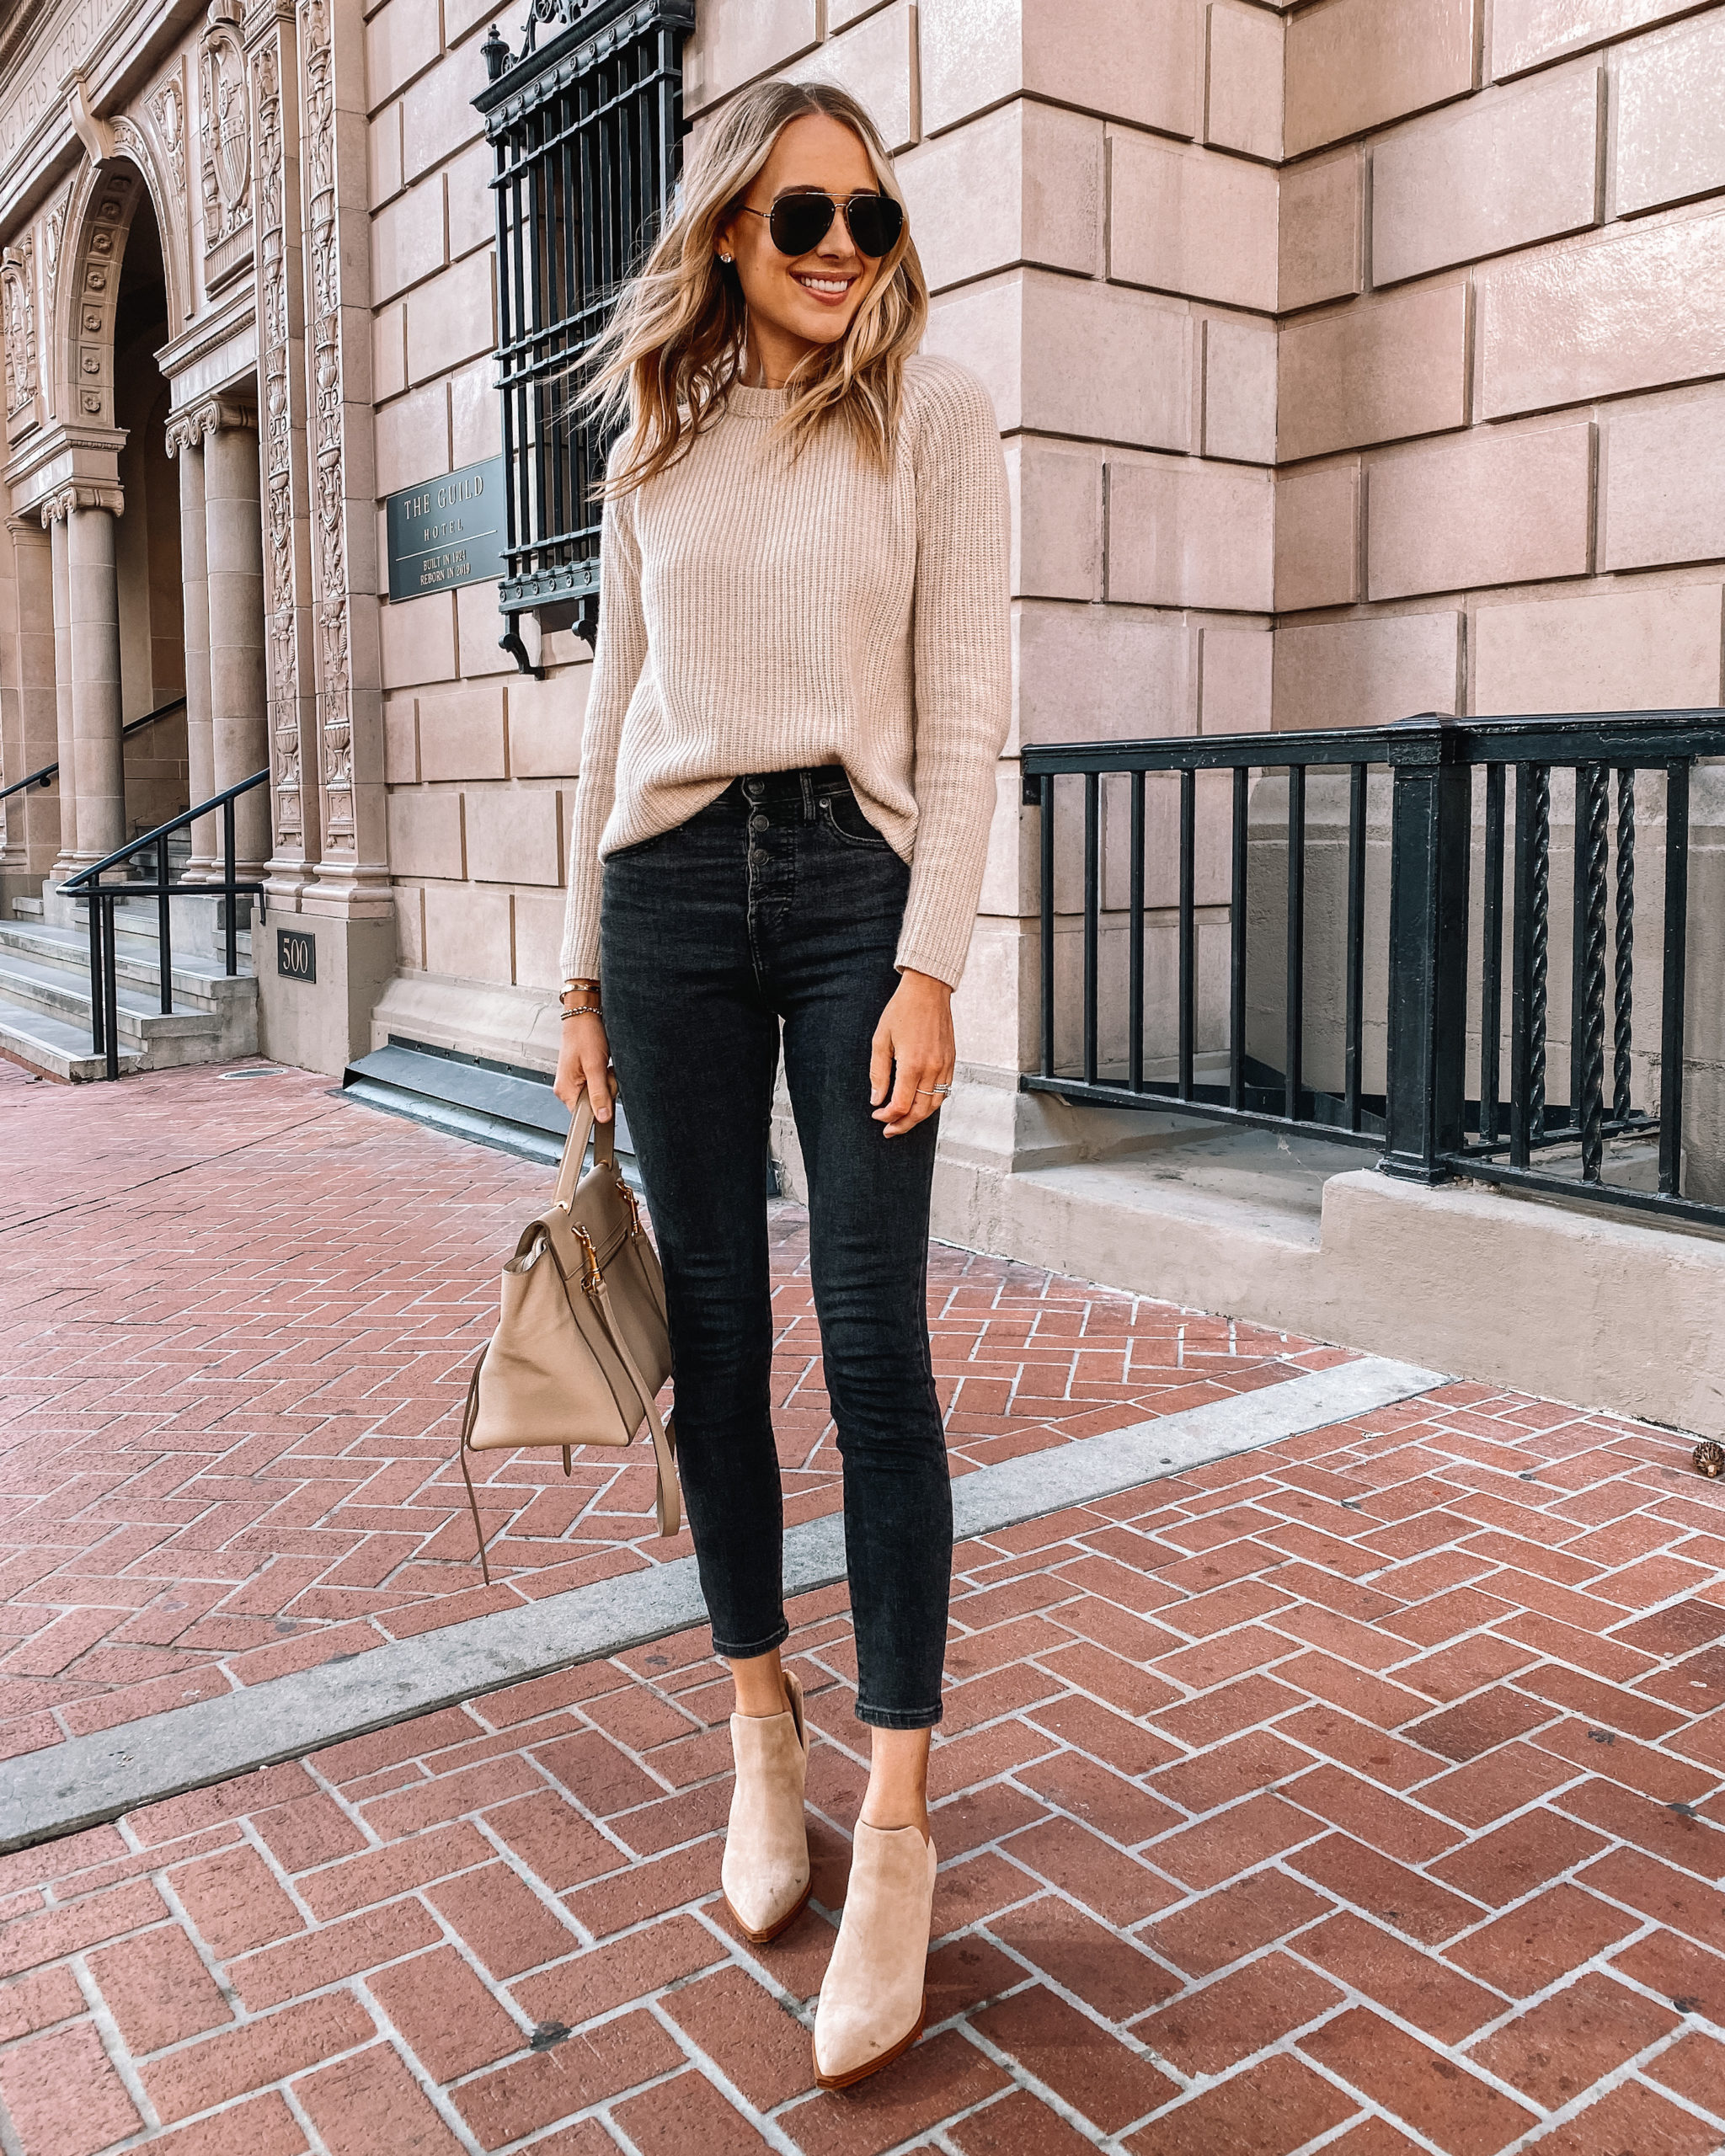 Fashion Jackson Wearing Jenni Kayne Cashmere Sweater Black Skinny Jeans Tan Suede Booties